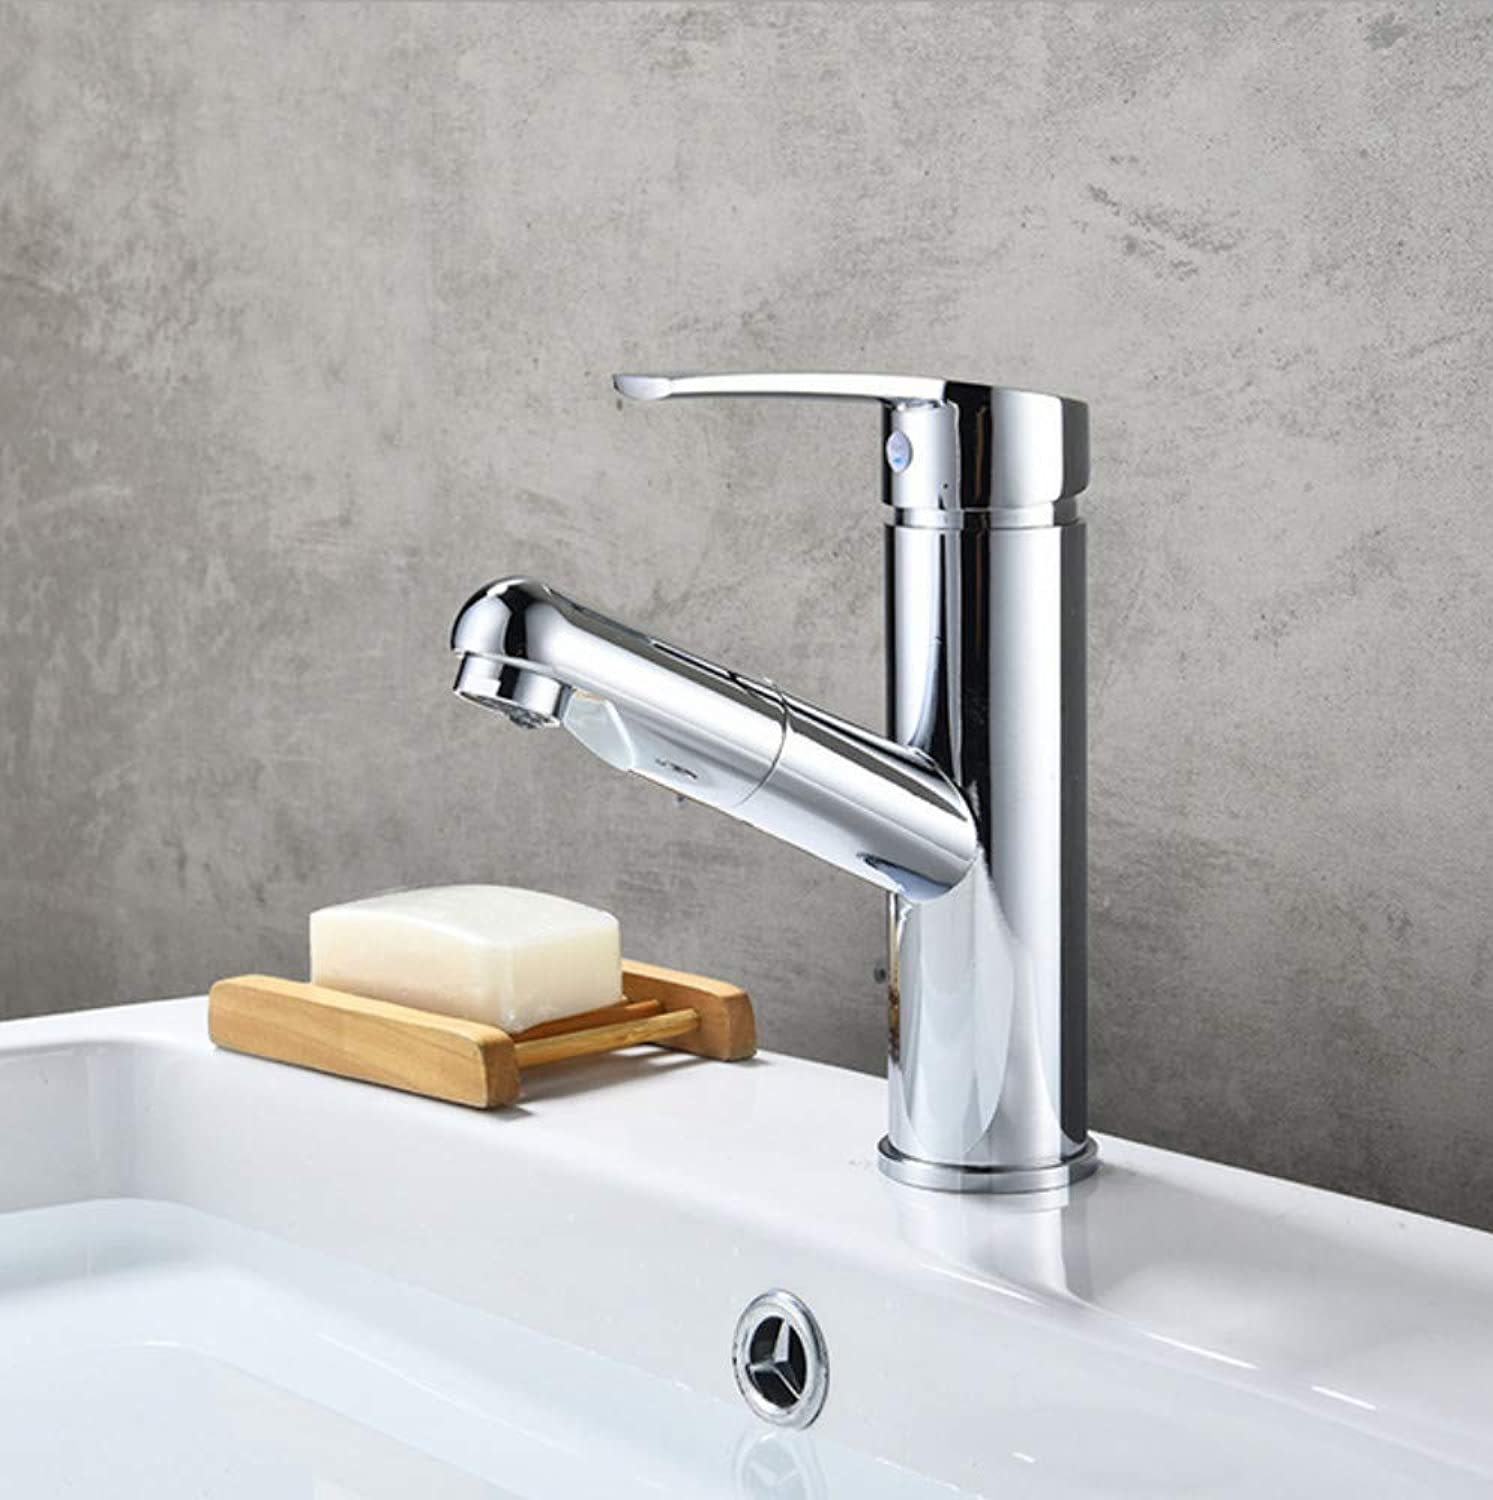 Xiujie Faucet All Copper Pullable Basin Faucet Washbasin Hot and Cold Water Retractable Bathroom Cabinet Pull-Out Faucet